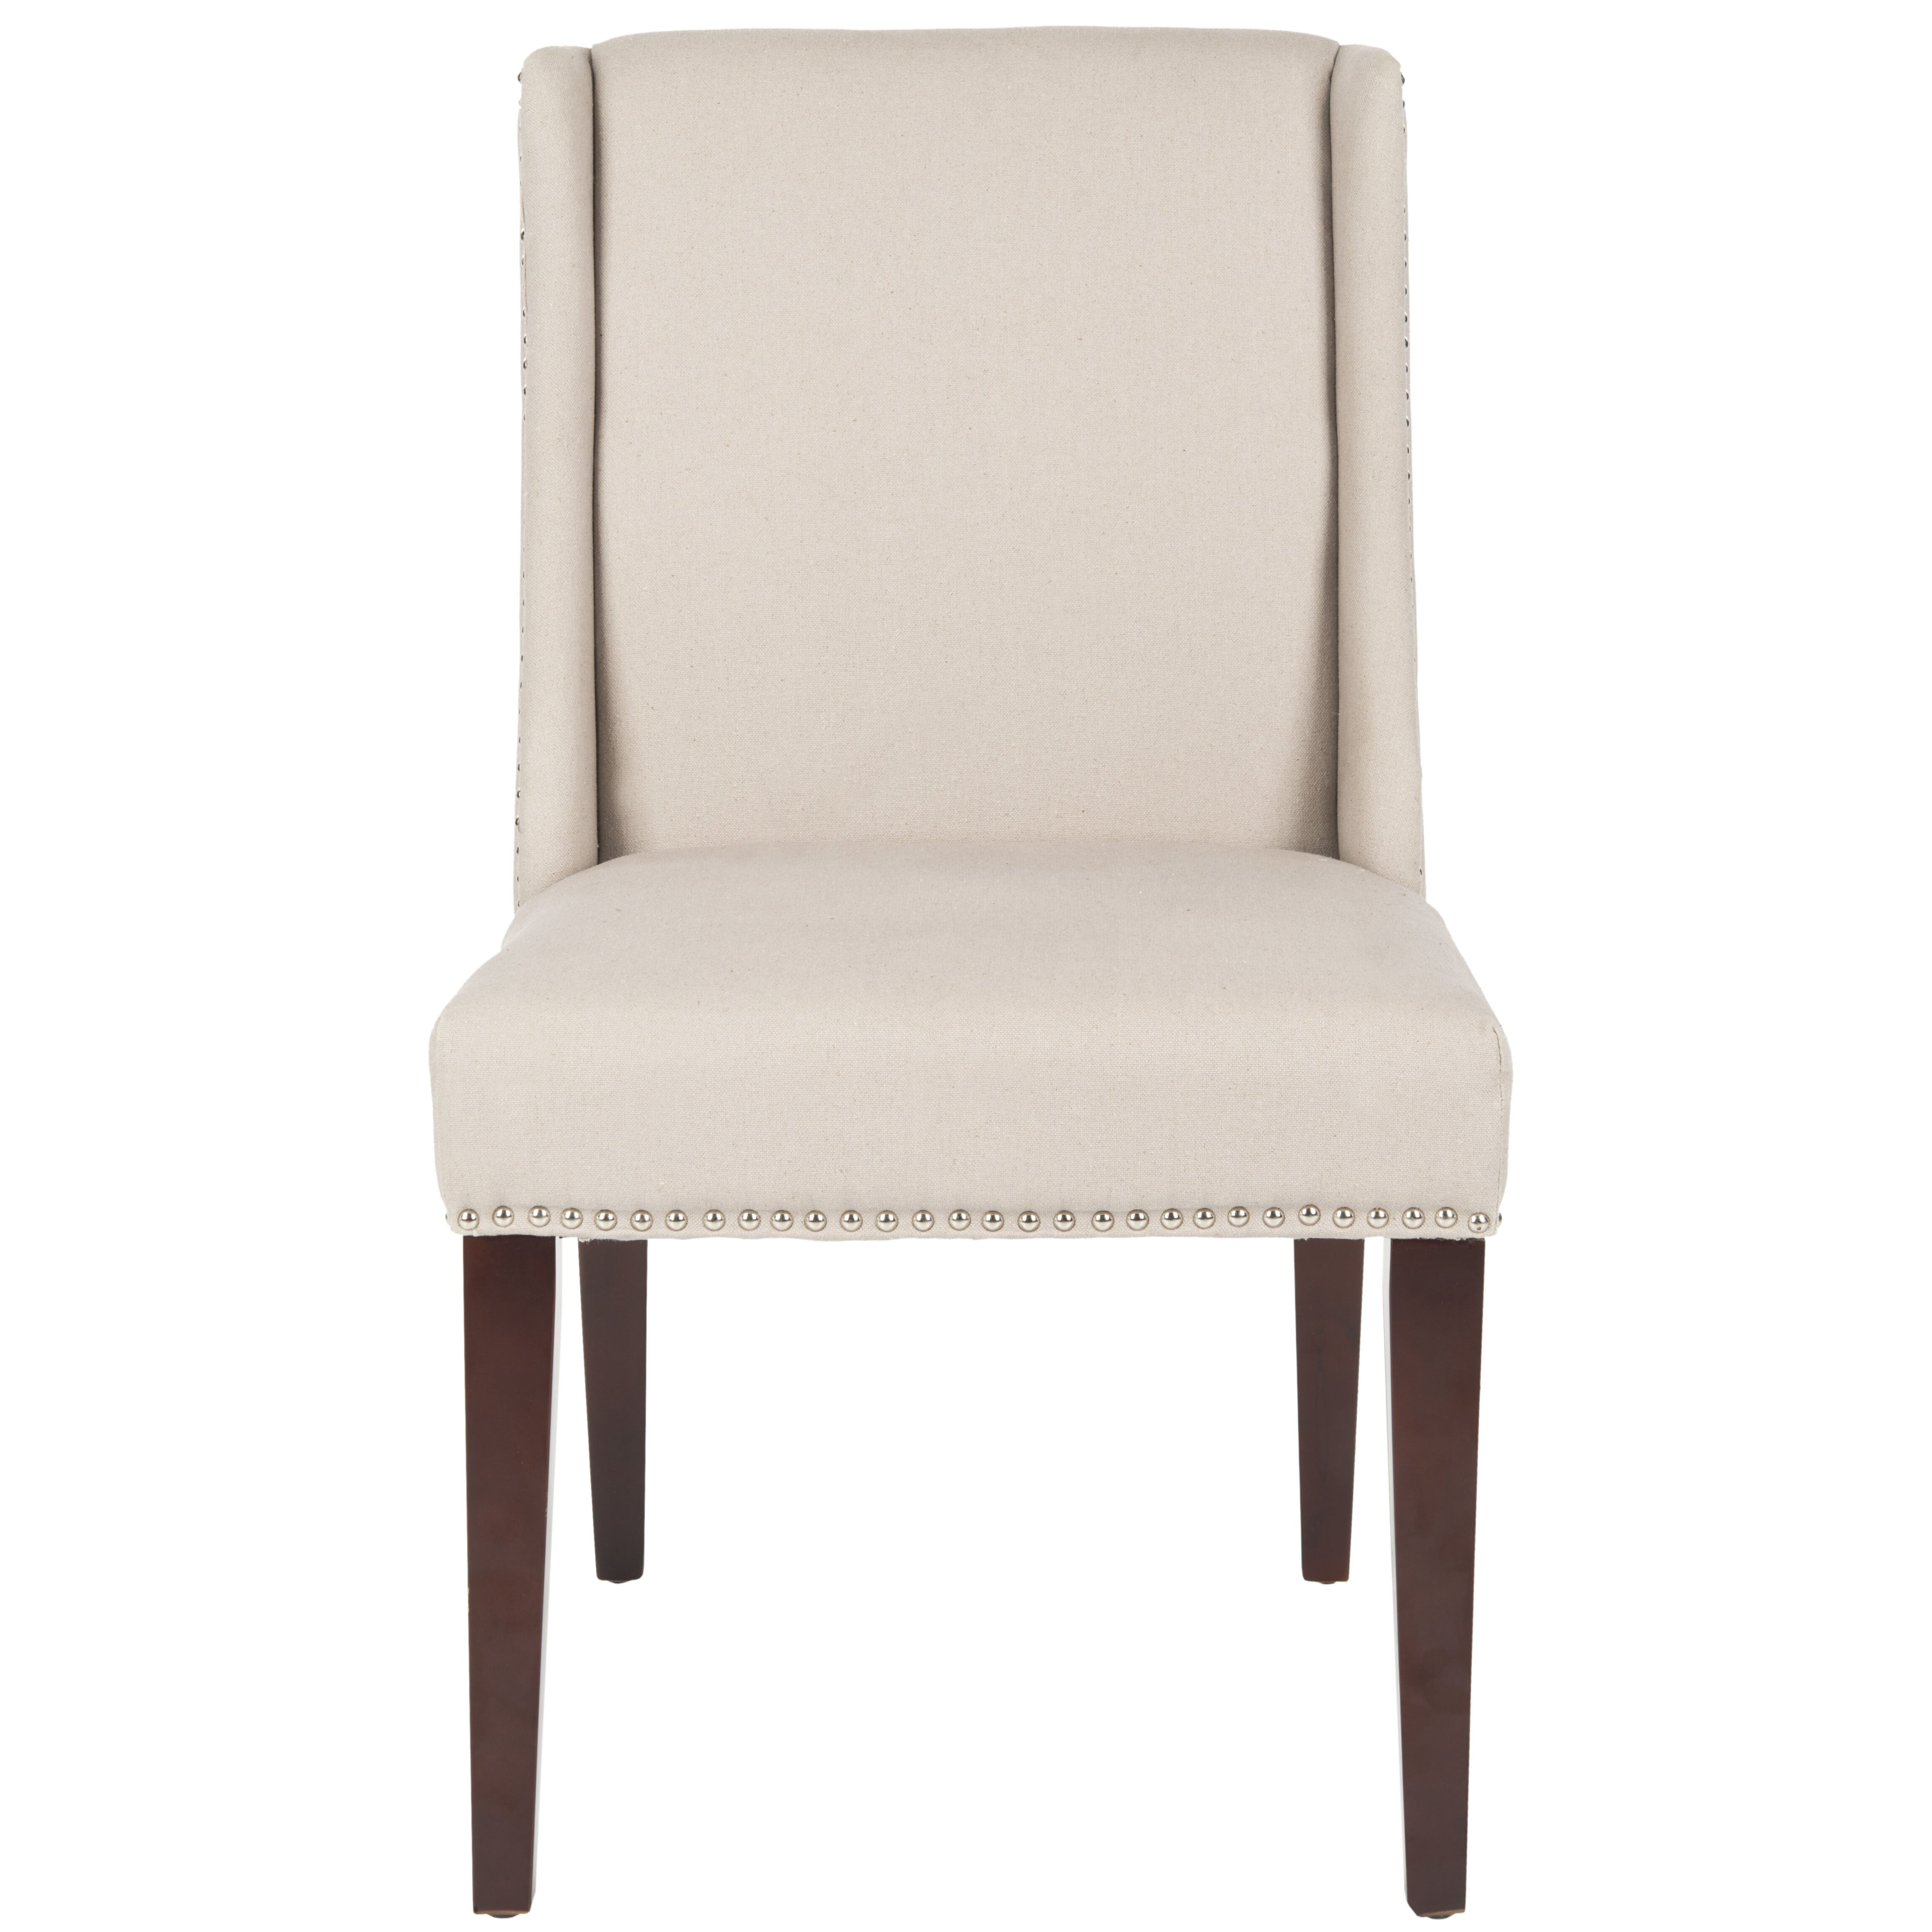 Safavieh collier solid birch upholstered dining chair reviews wayfair uk - Safavieh dining room chairs ideas ...